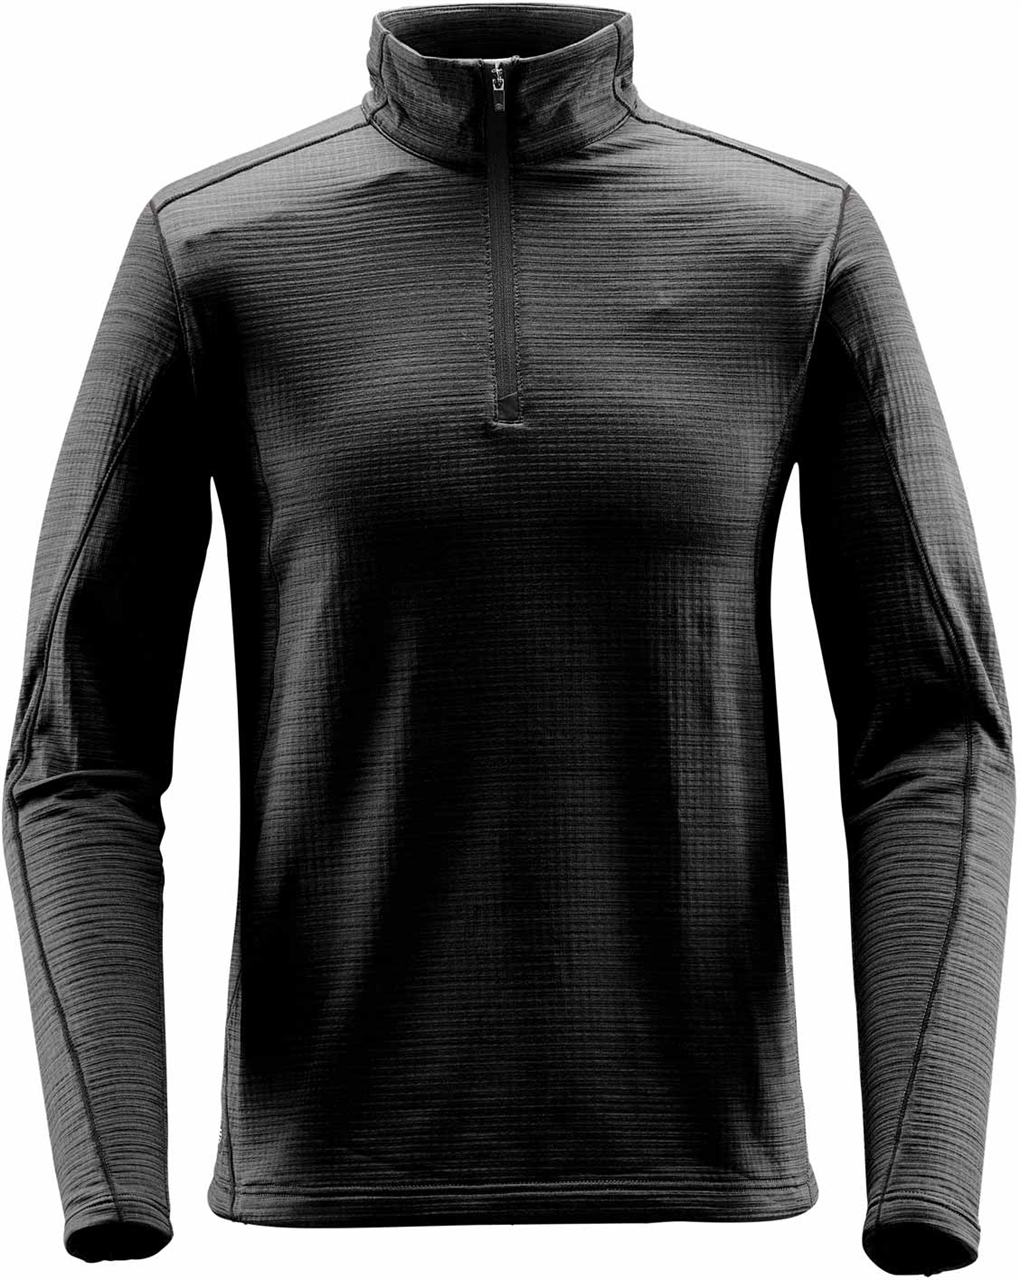 Picture of STORMTECH Men's Base Thermal 1/4 Zip